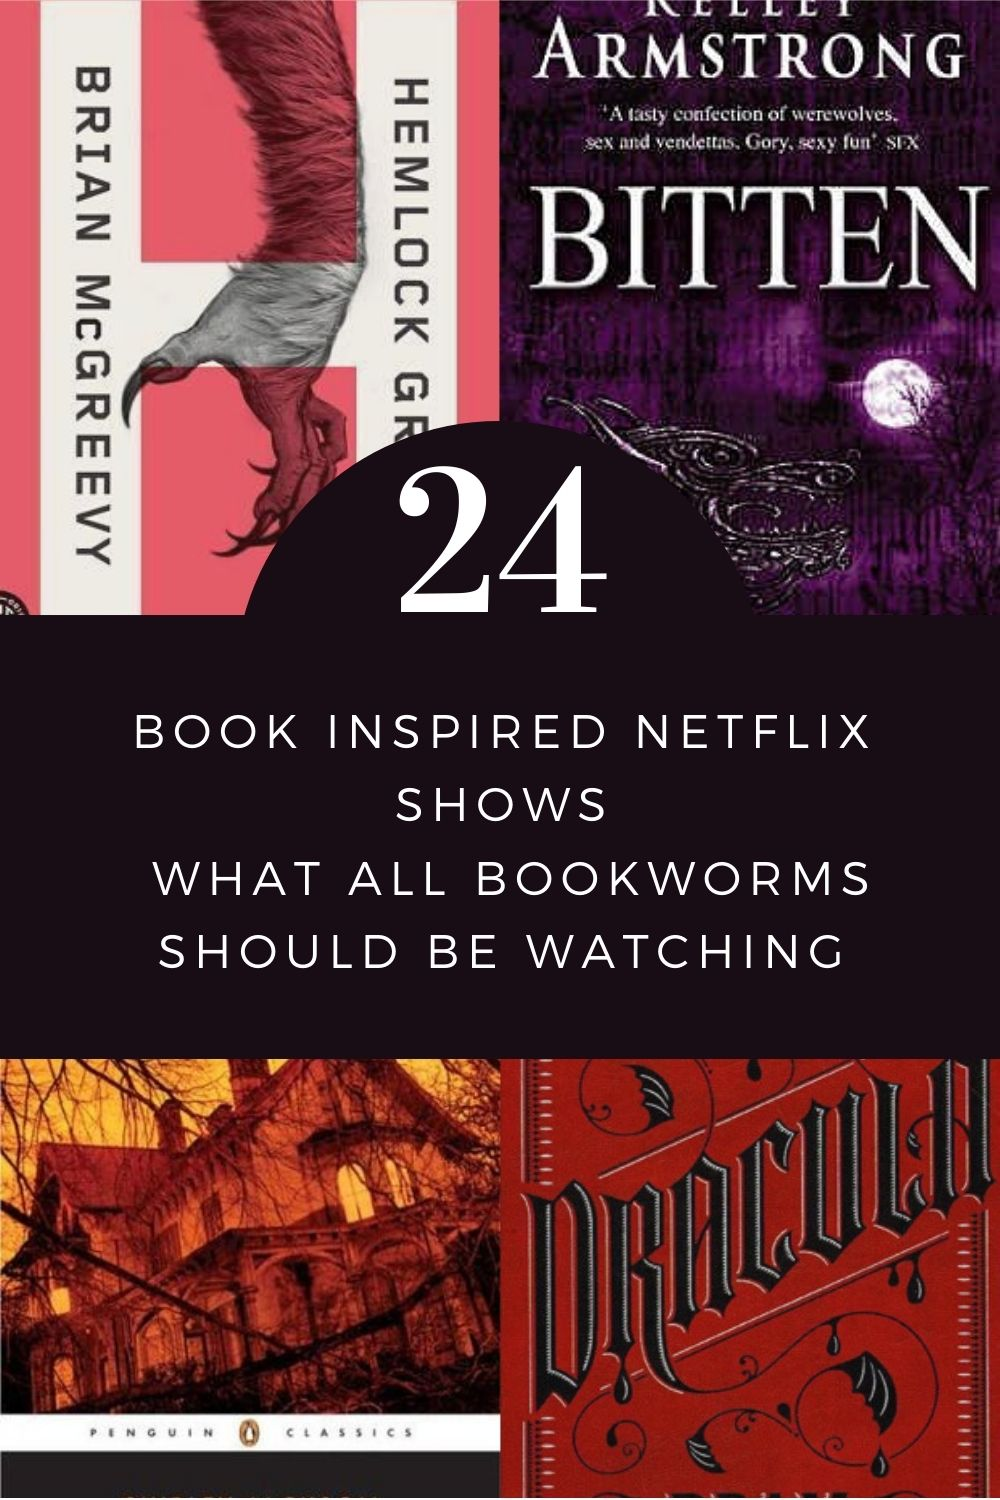 24 tv shows that all bookworms should be watching. via @tbookjunkie